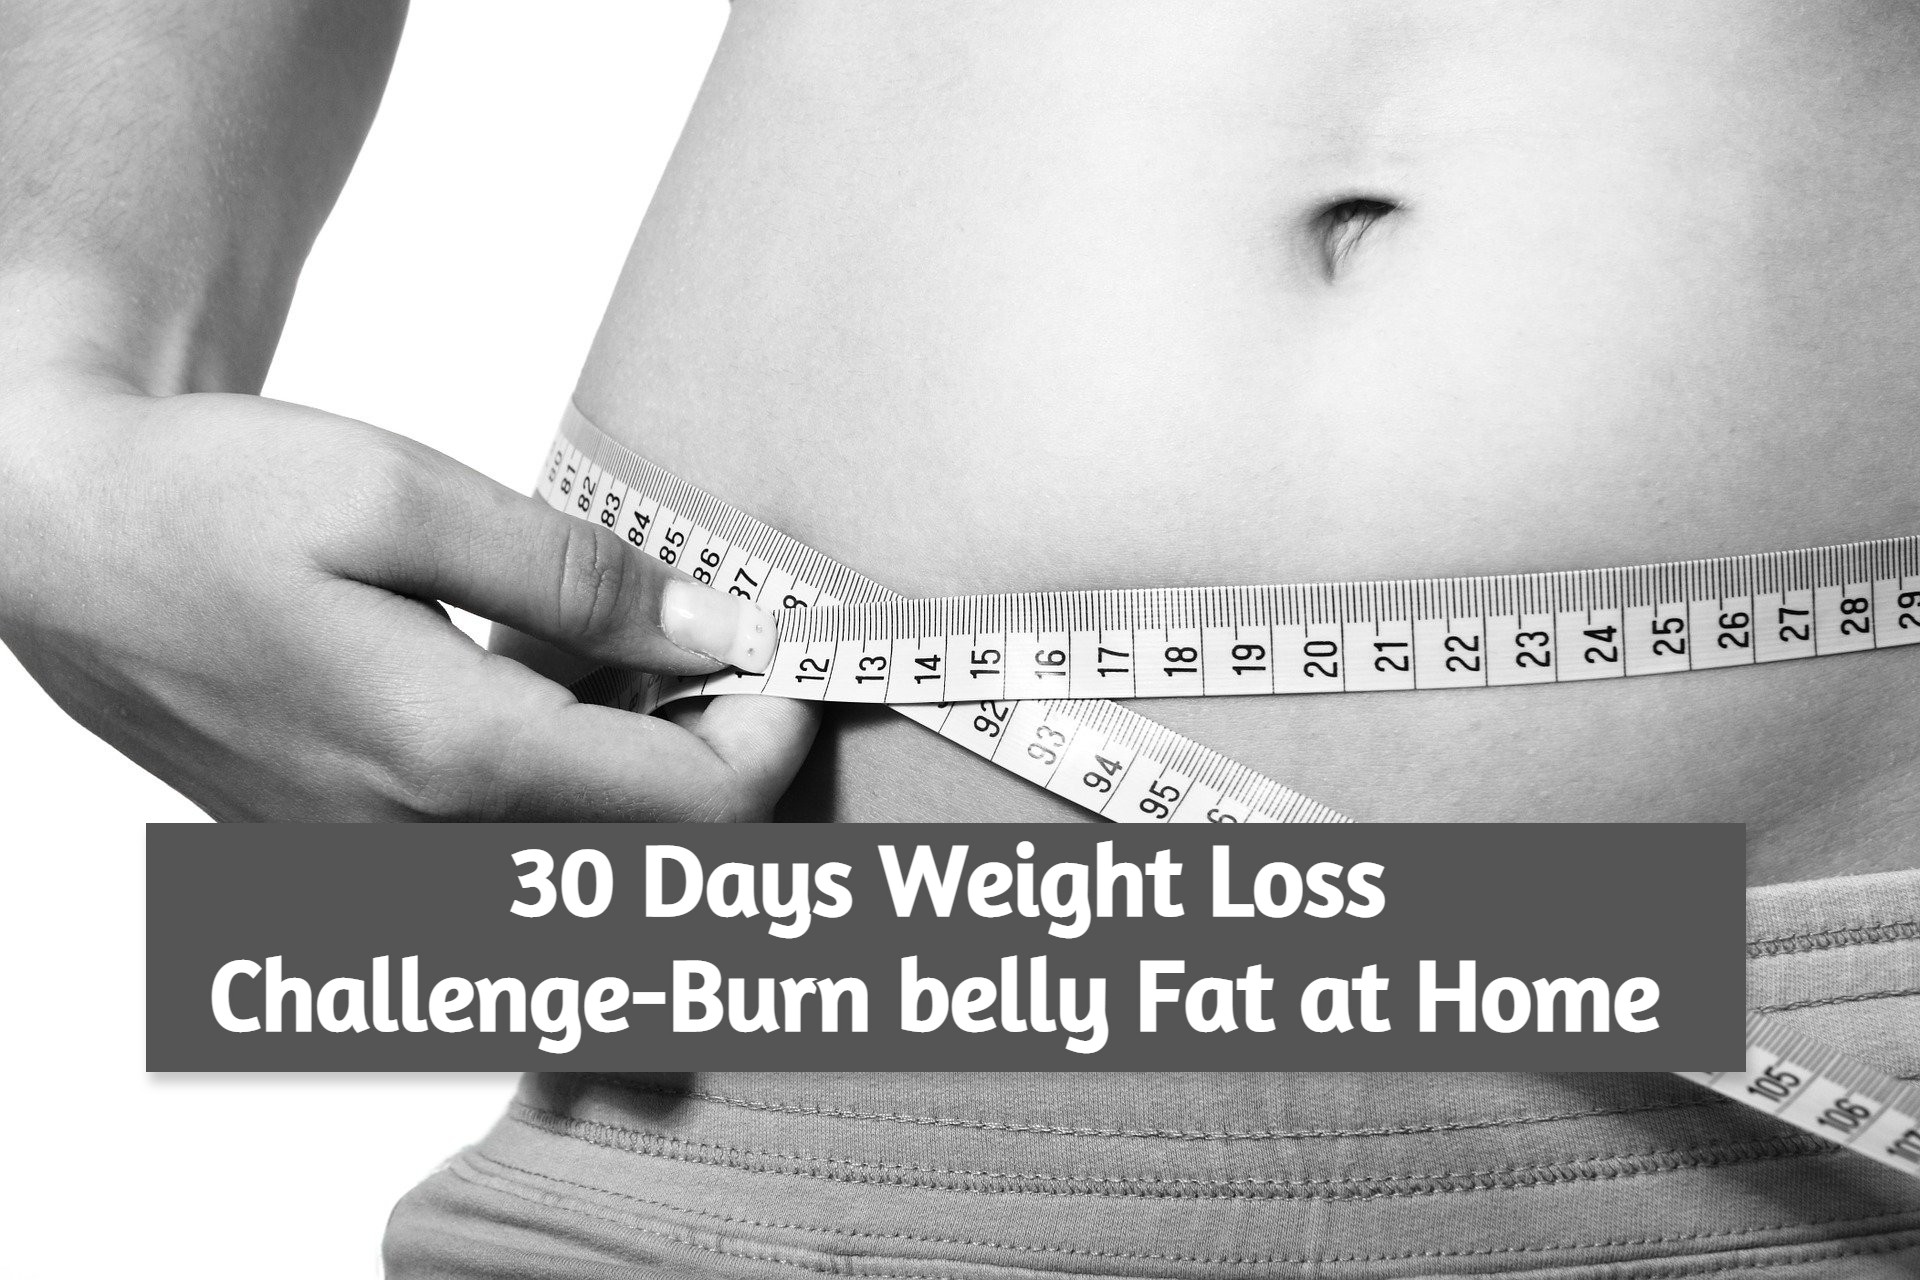 30 Days Weight Loss Challenge-Burn belly Fat at Home